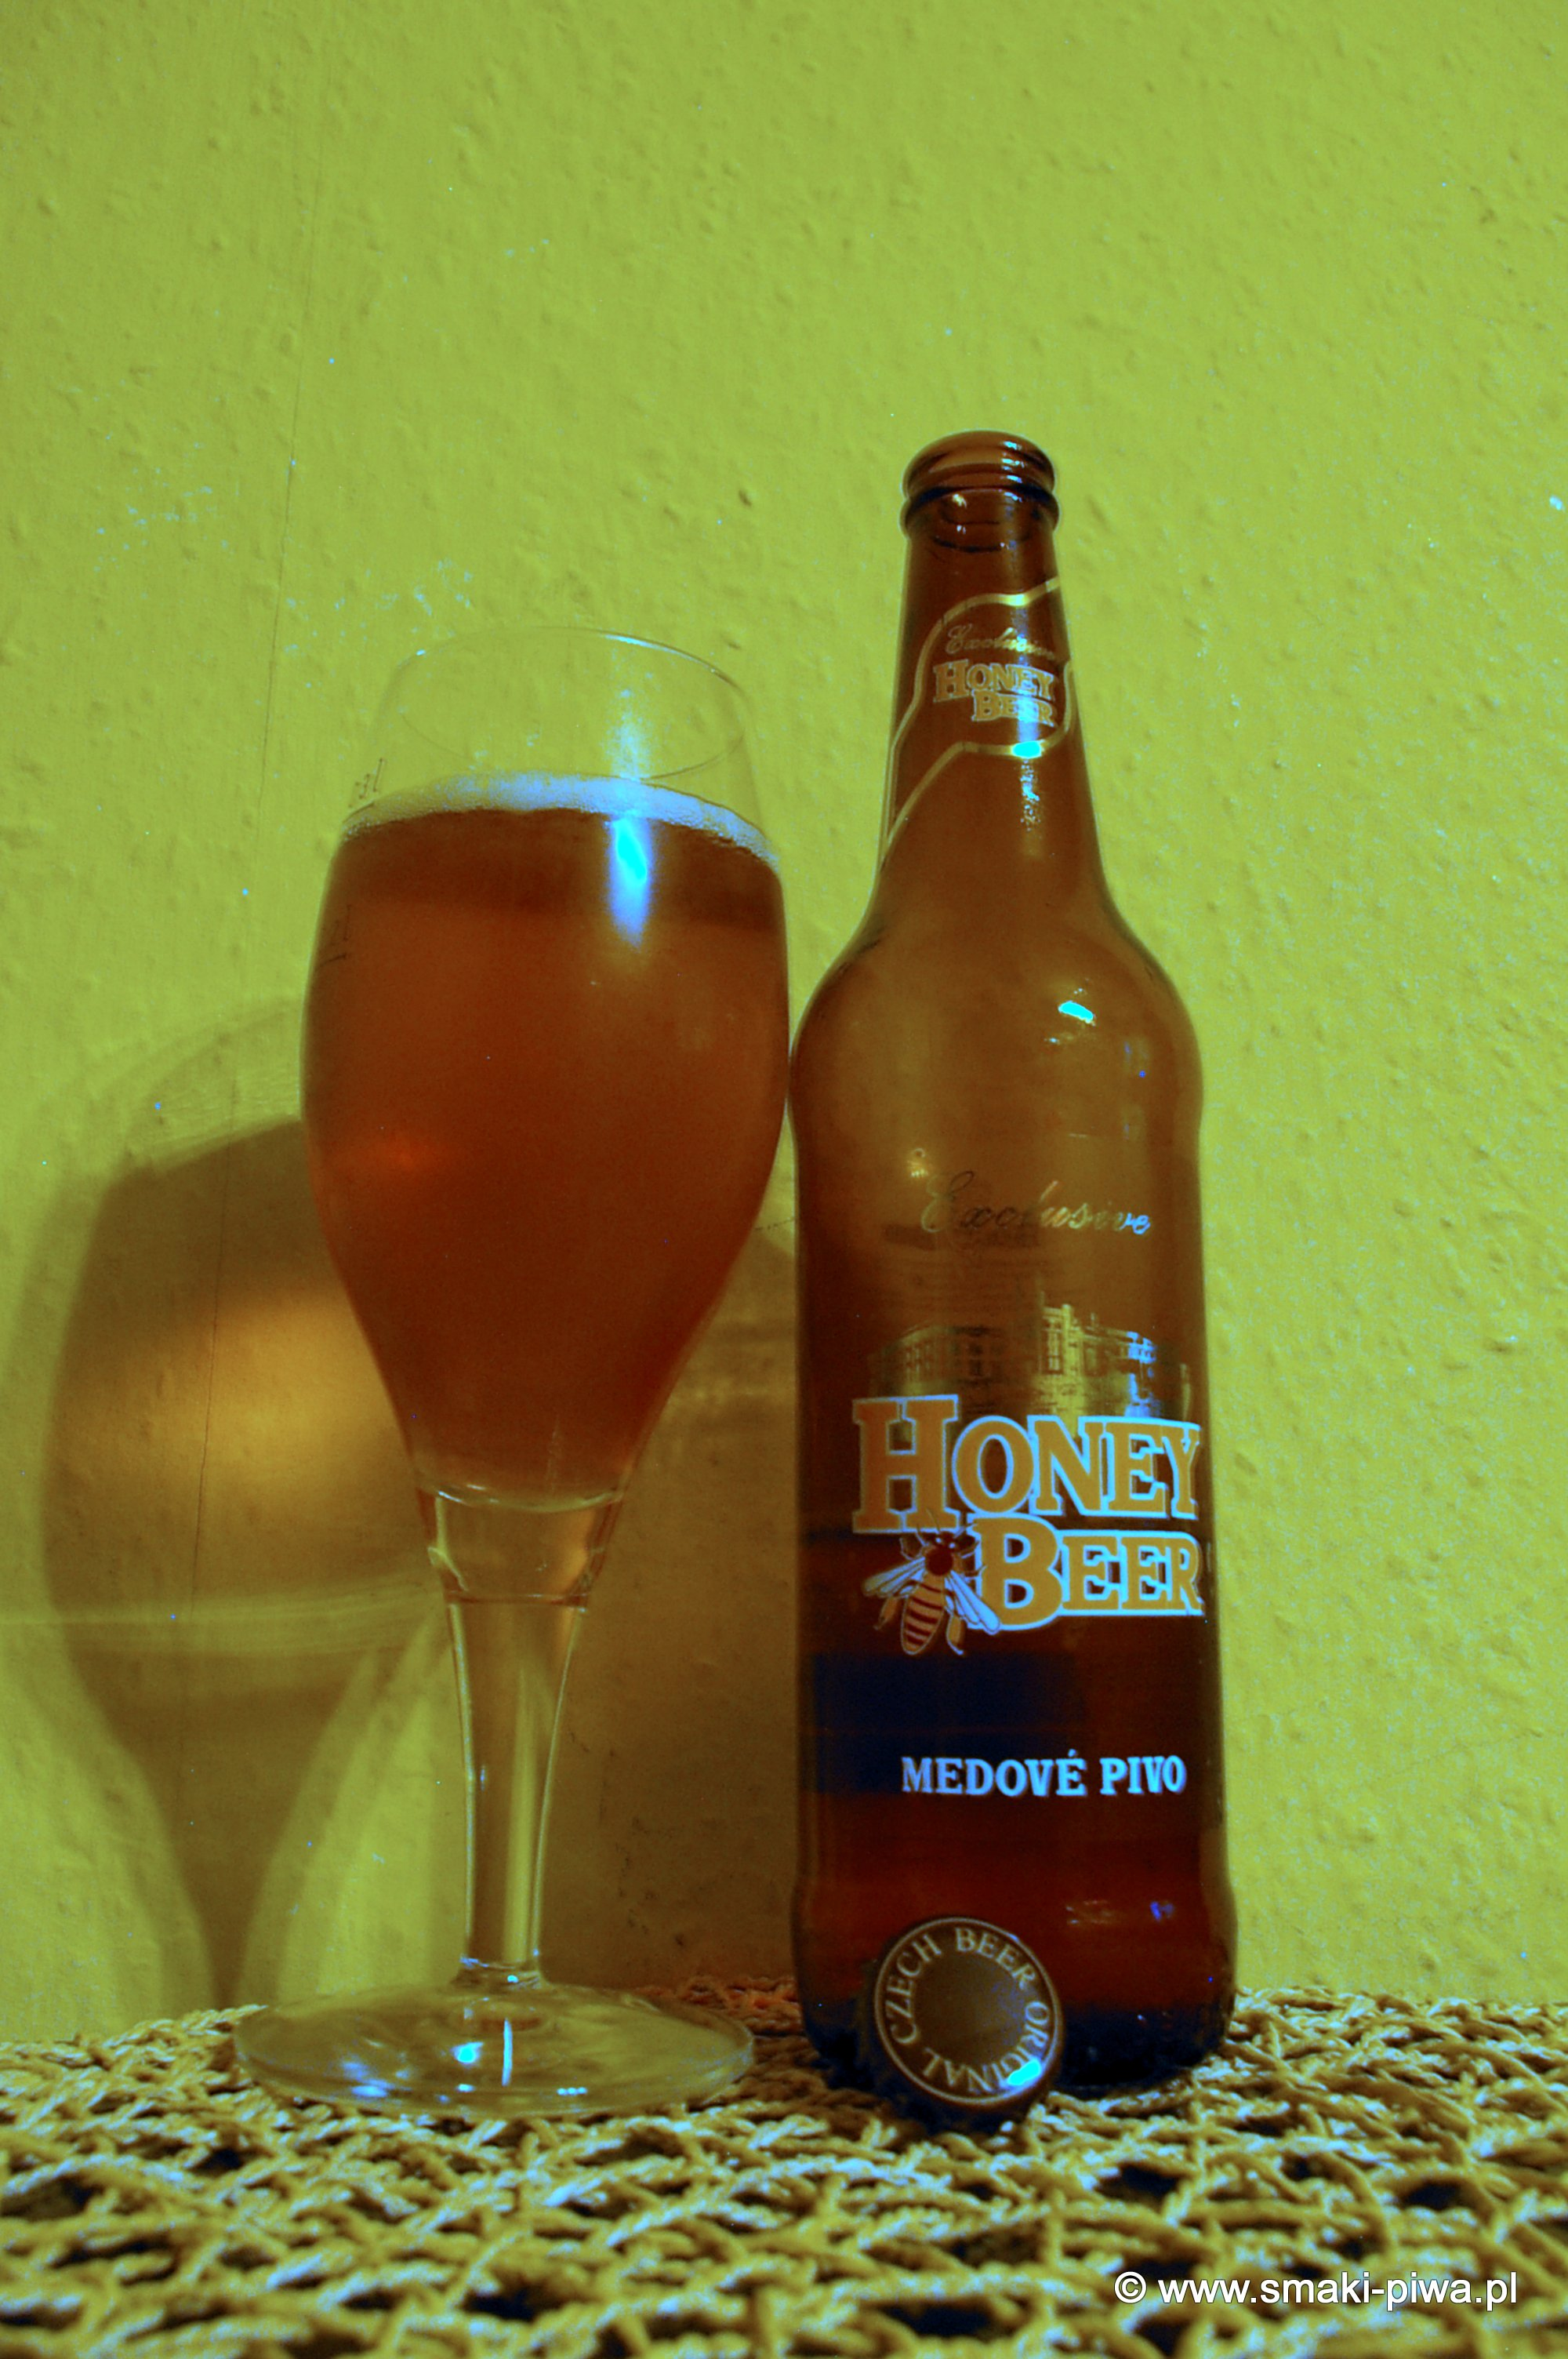 Honey Beer